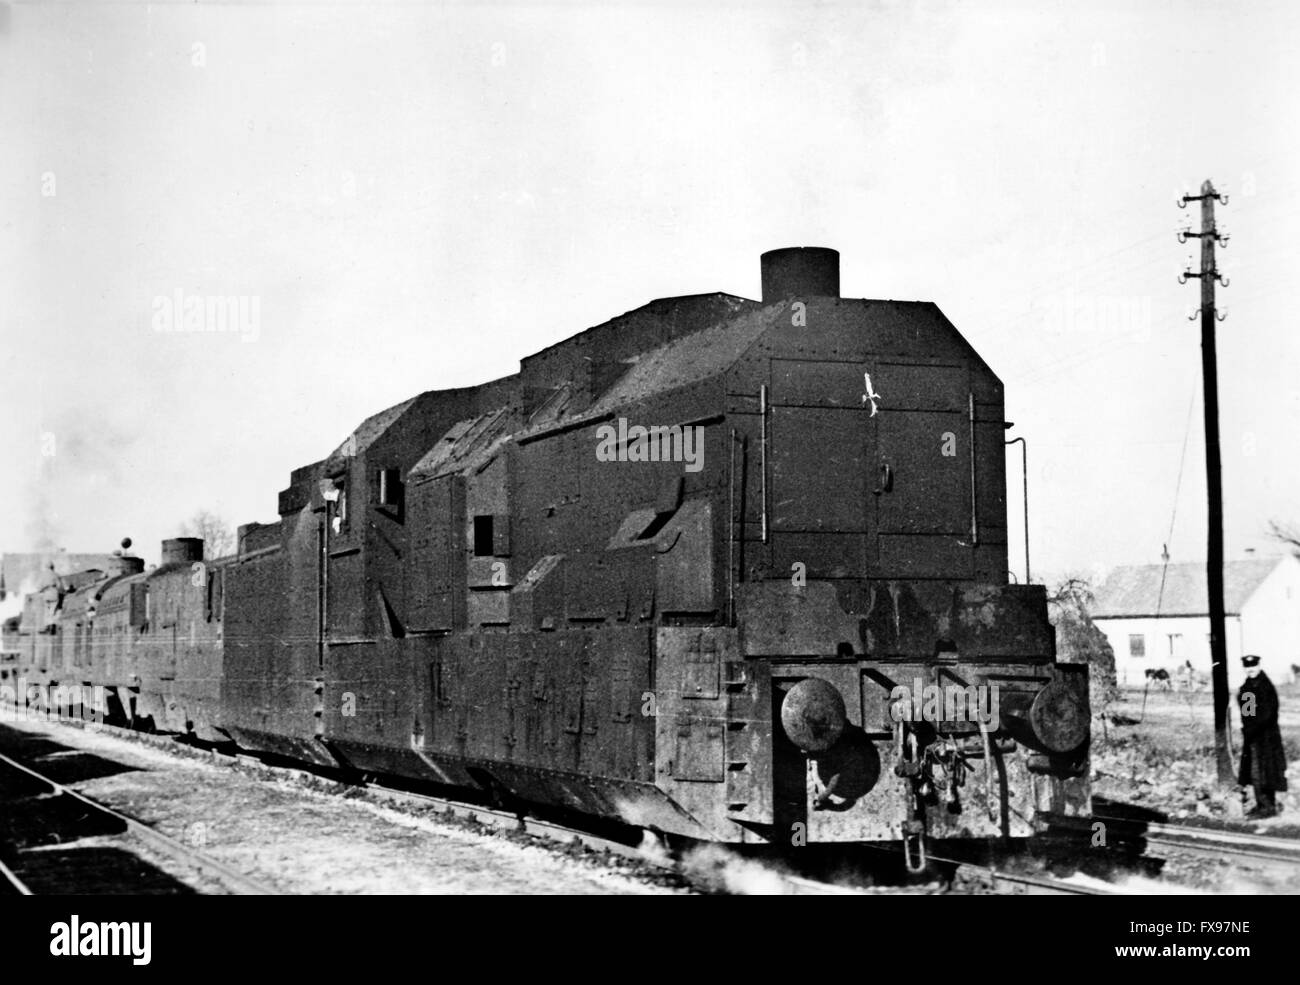 The Nazi propaganda image depicts an armored train of the ...